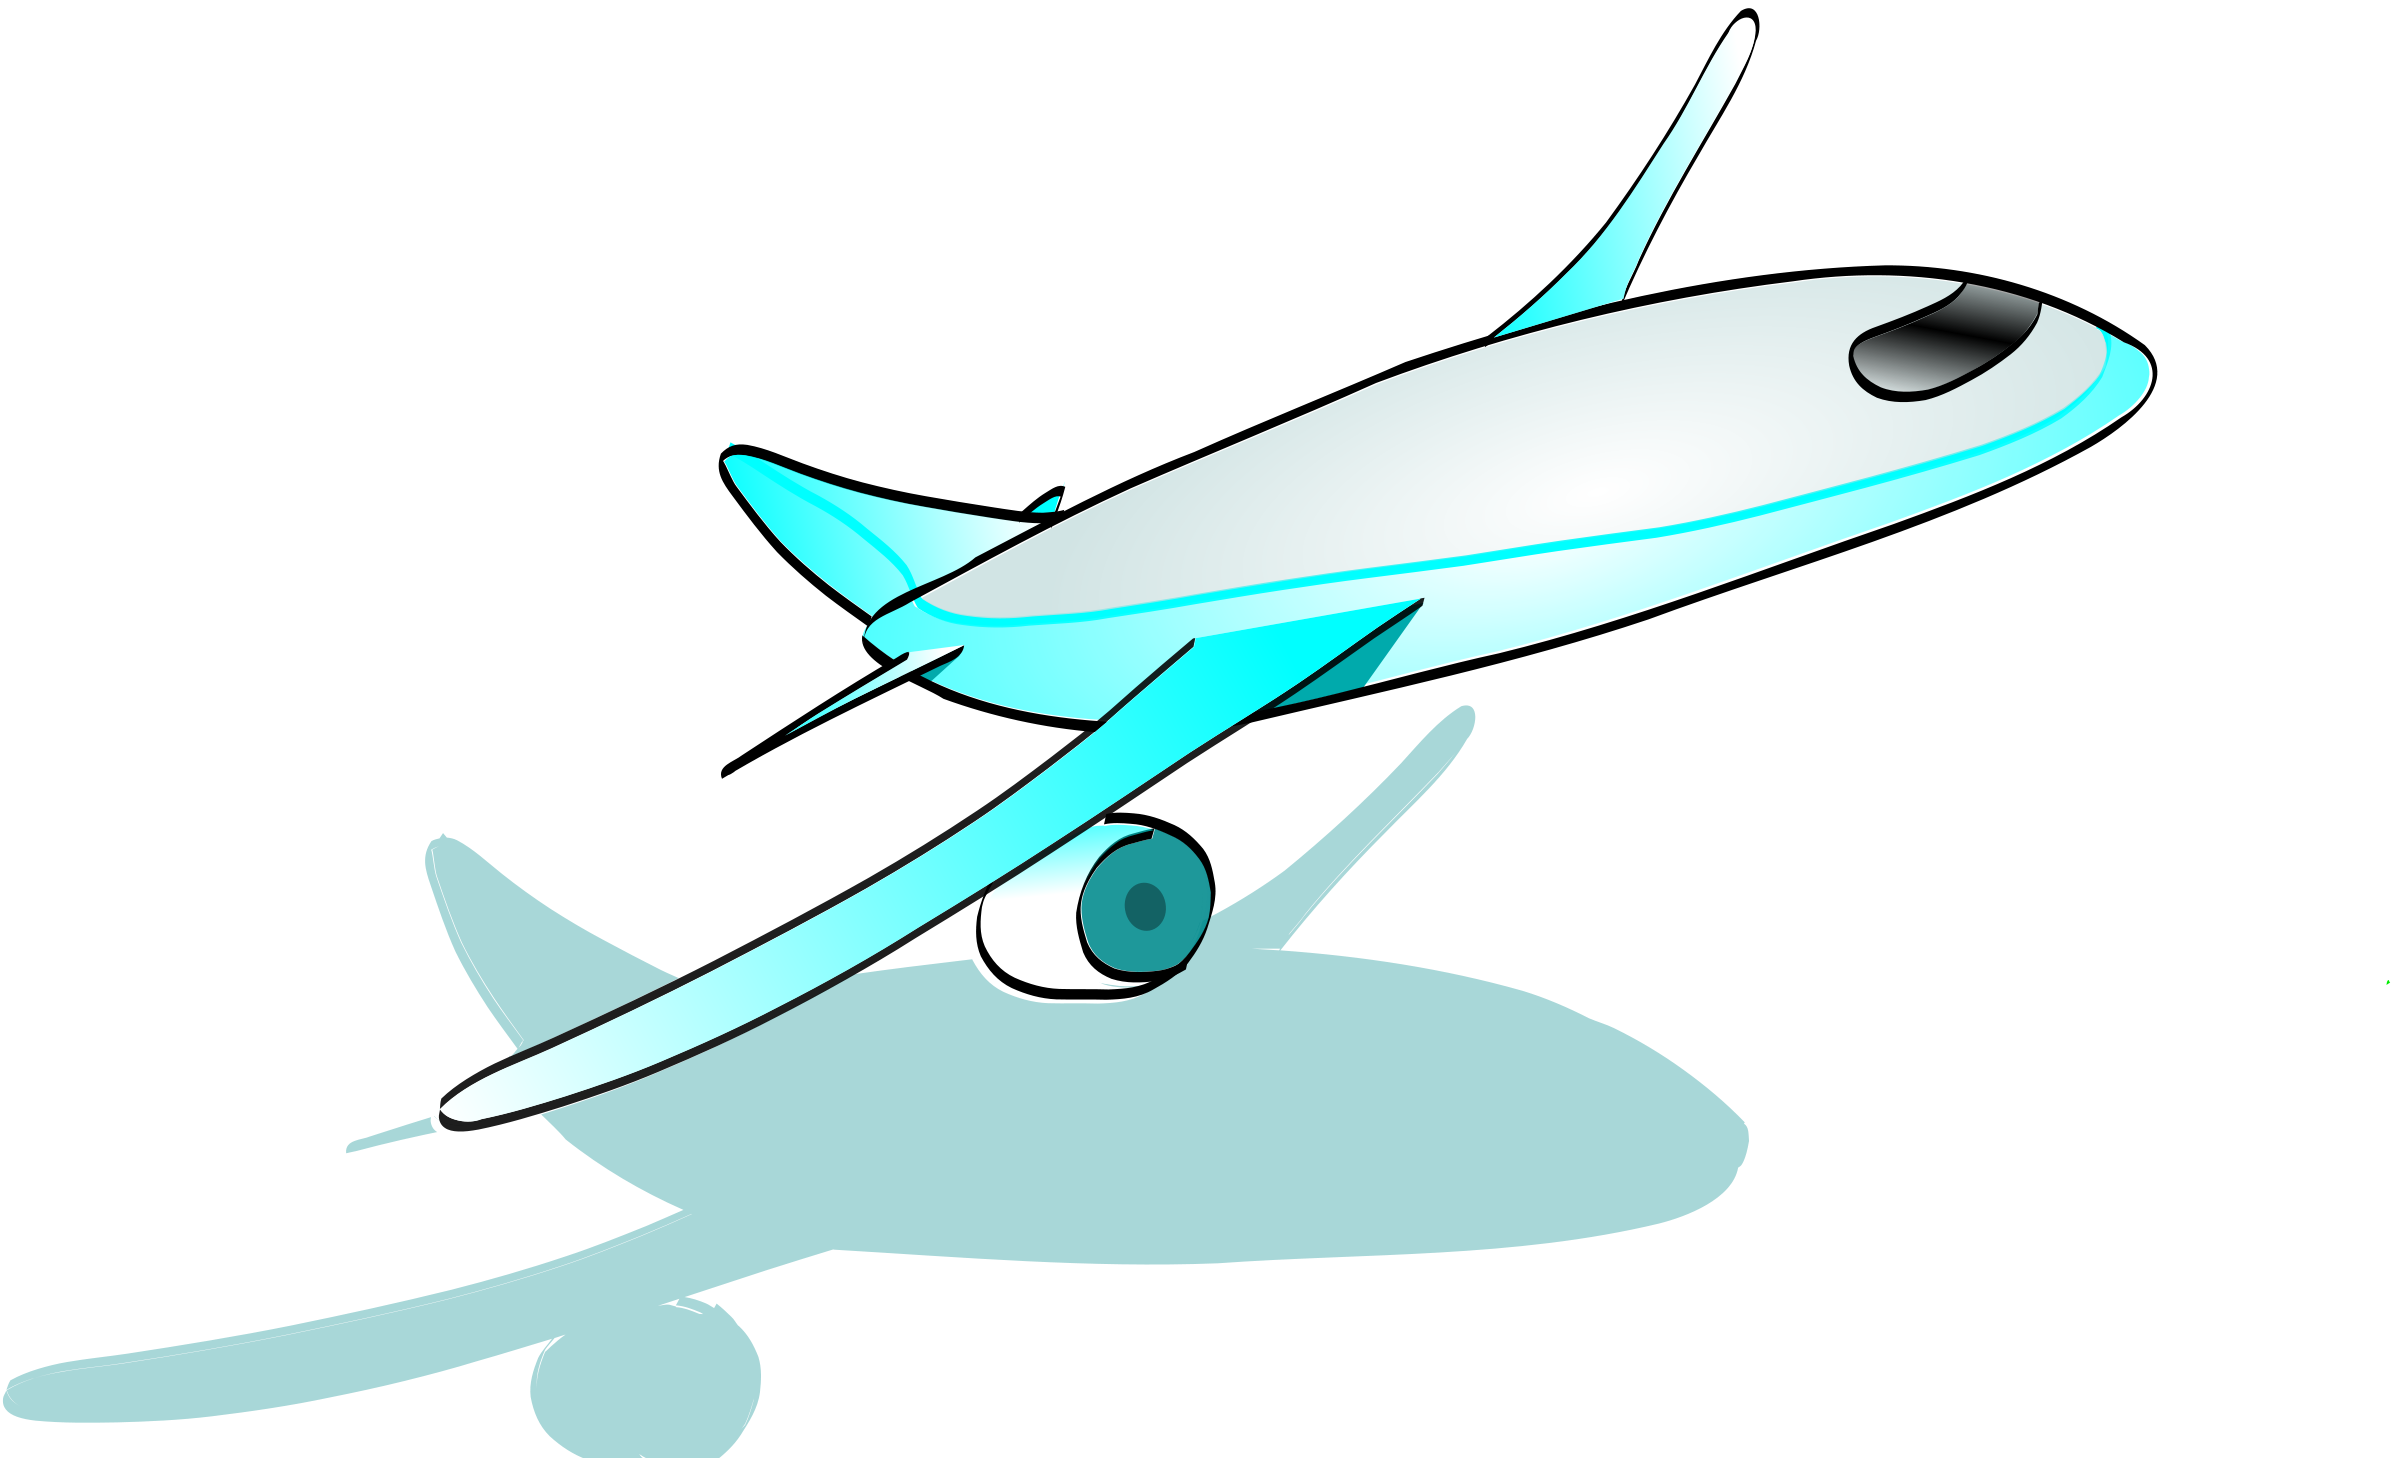 Airplane Clip Art Free Download